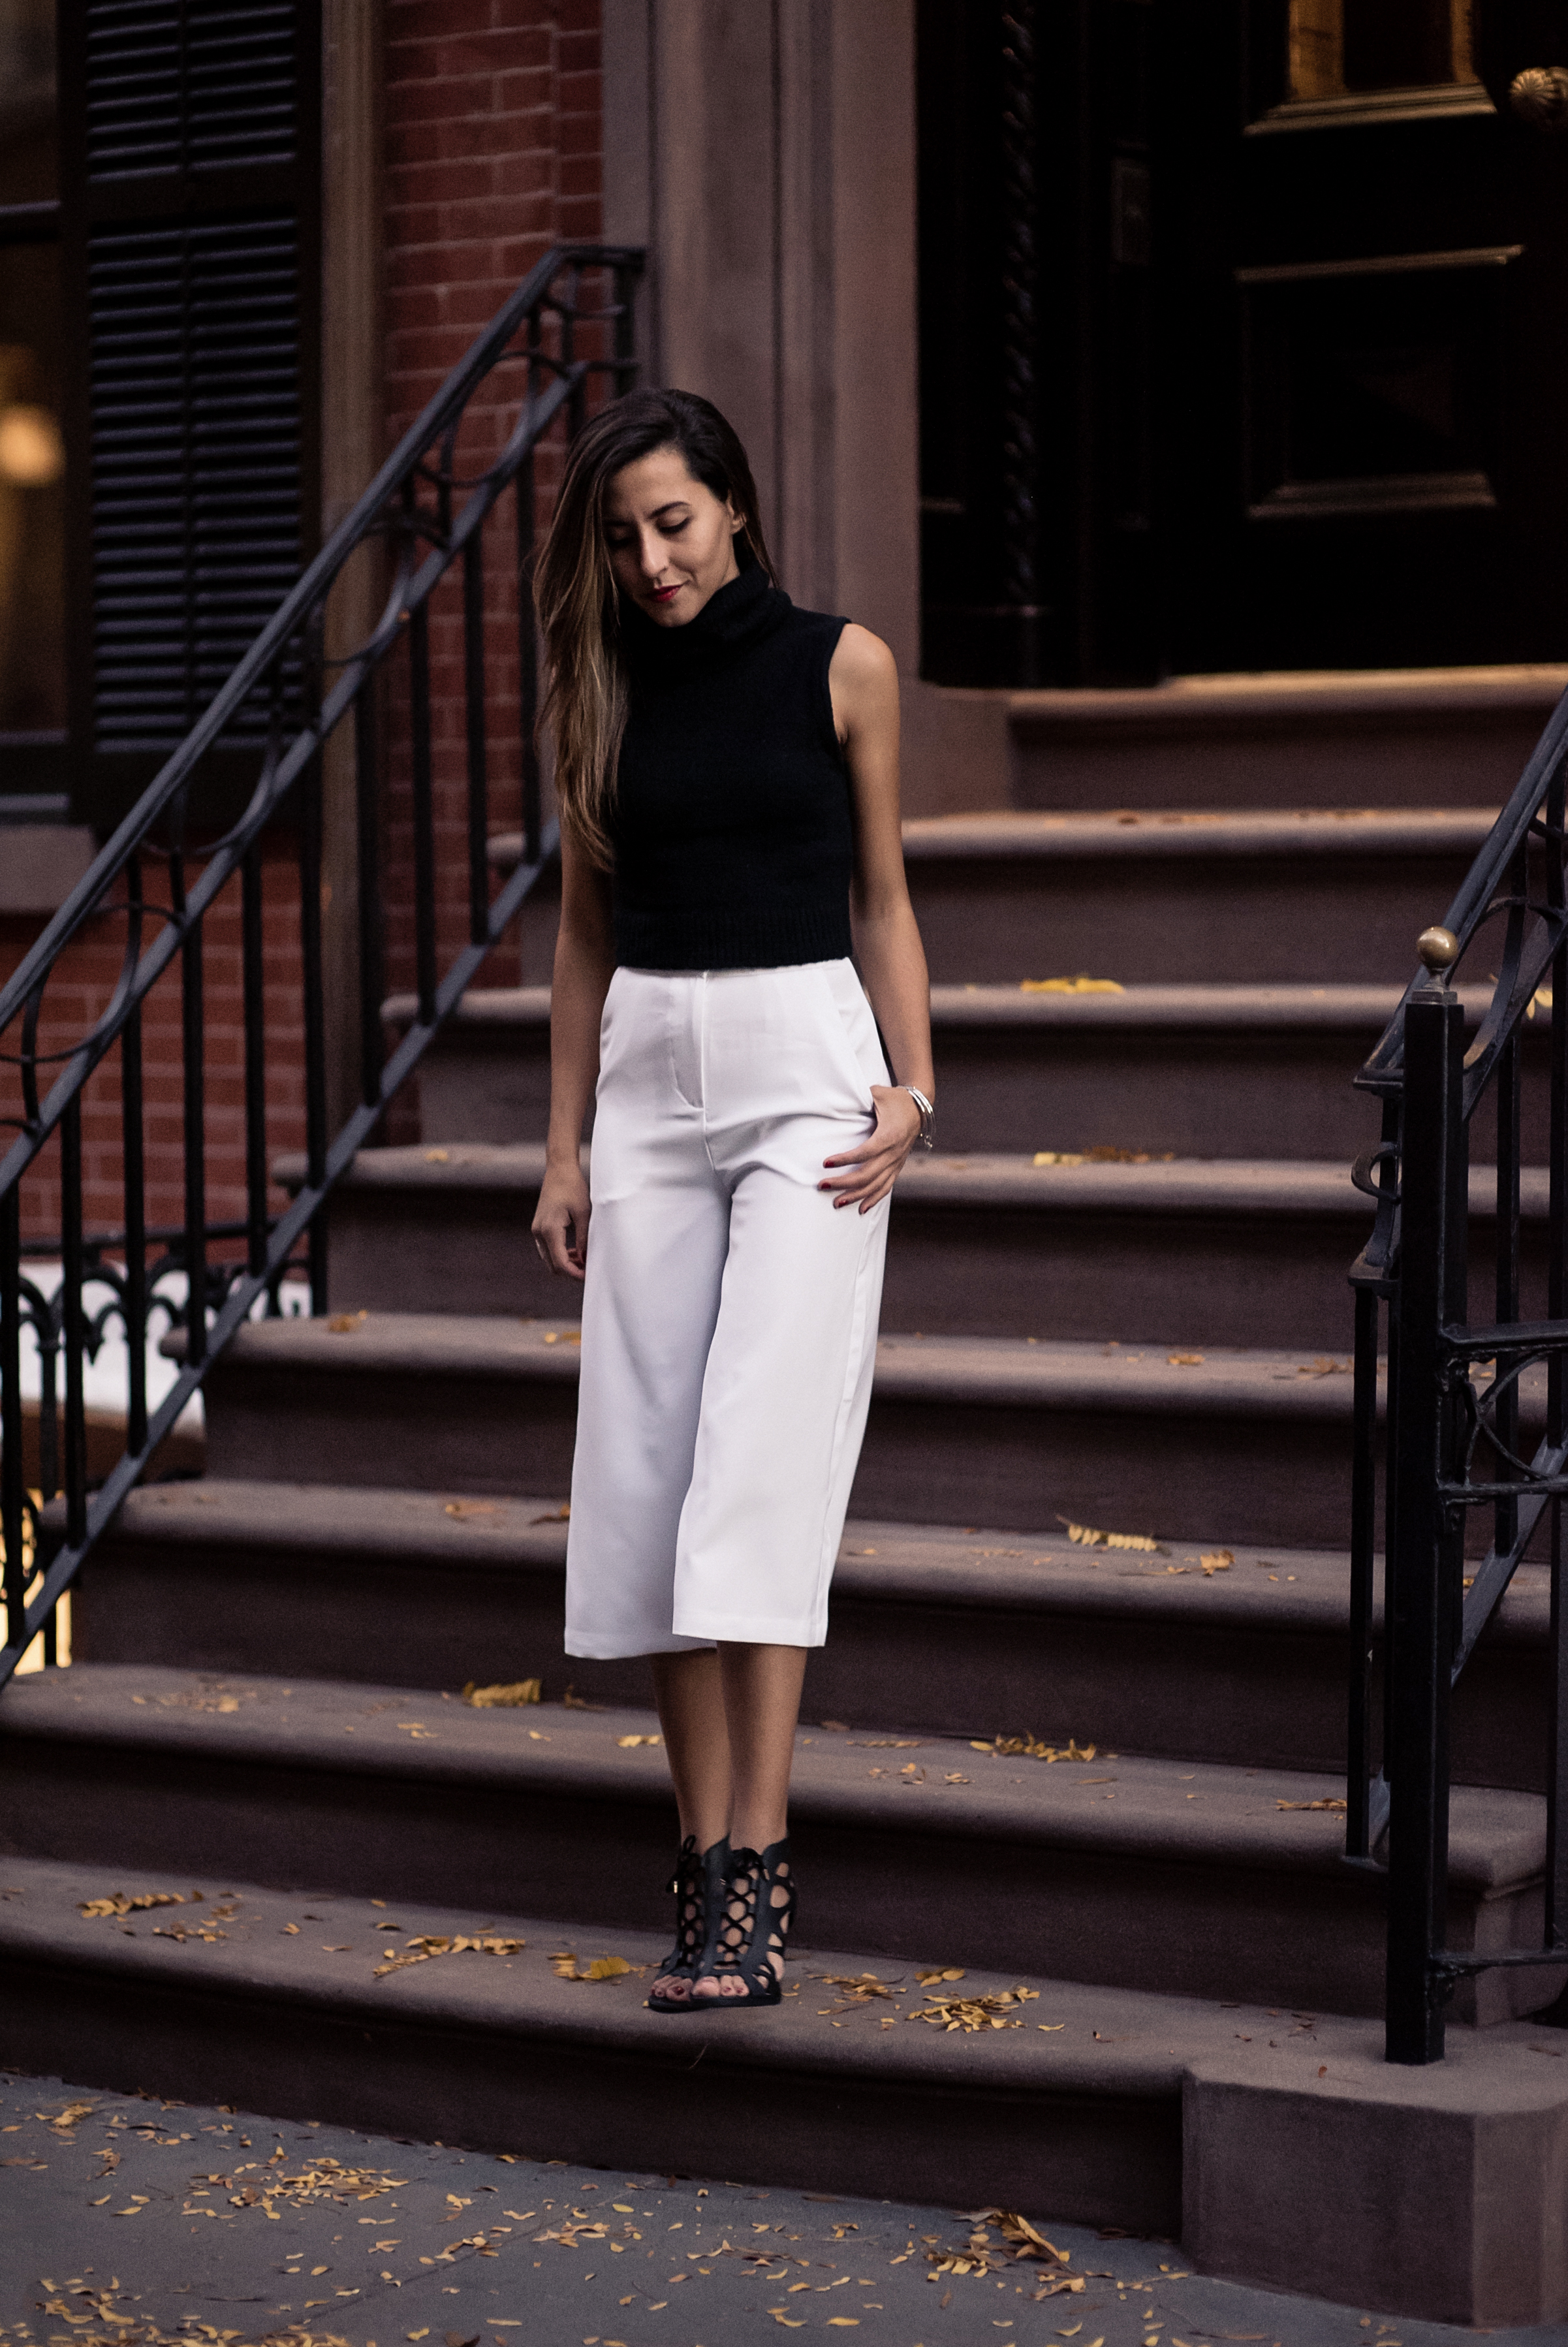 fashion-blogger-raquel-paiva-west-village-nyc-white-cullotes-outfit